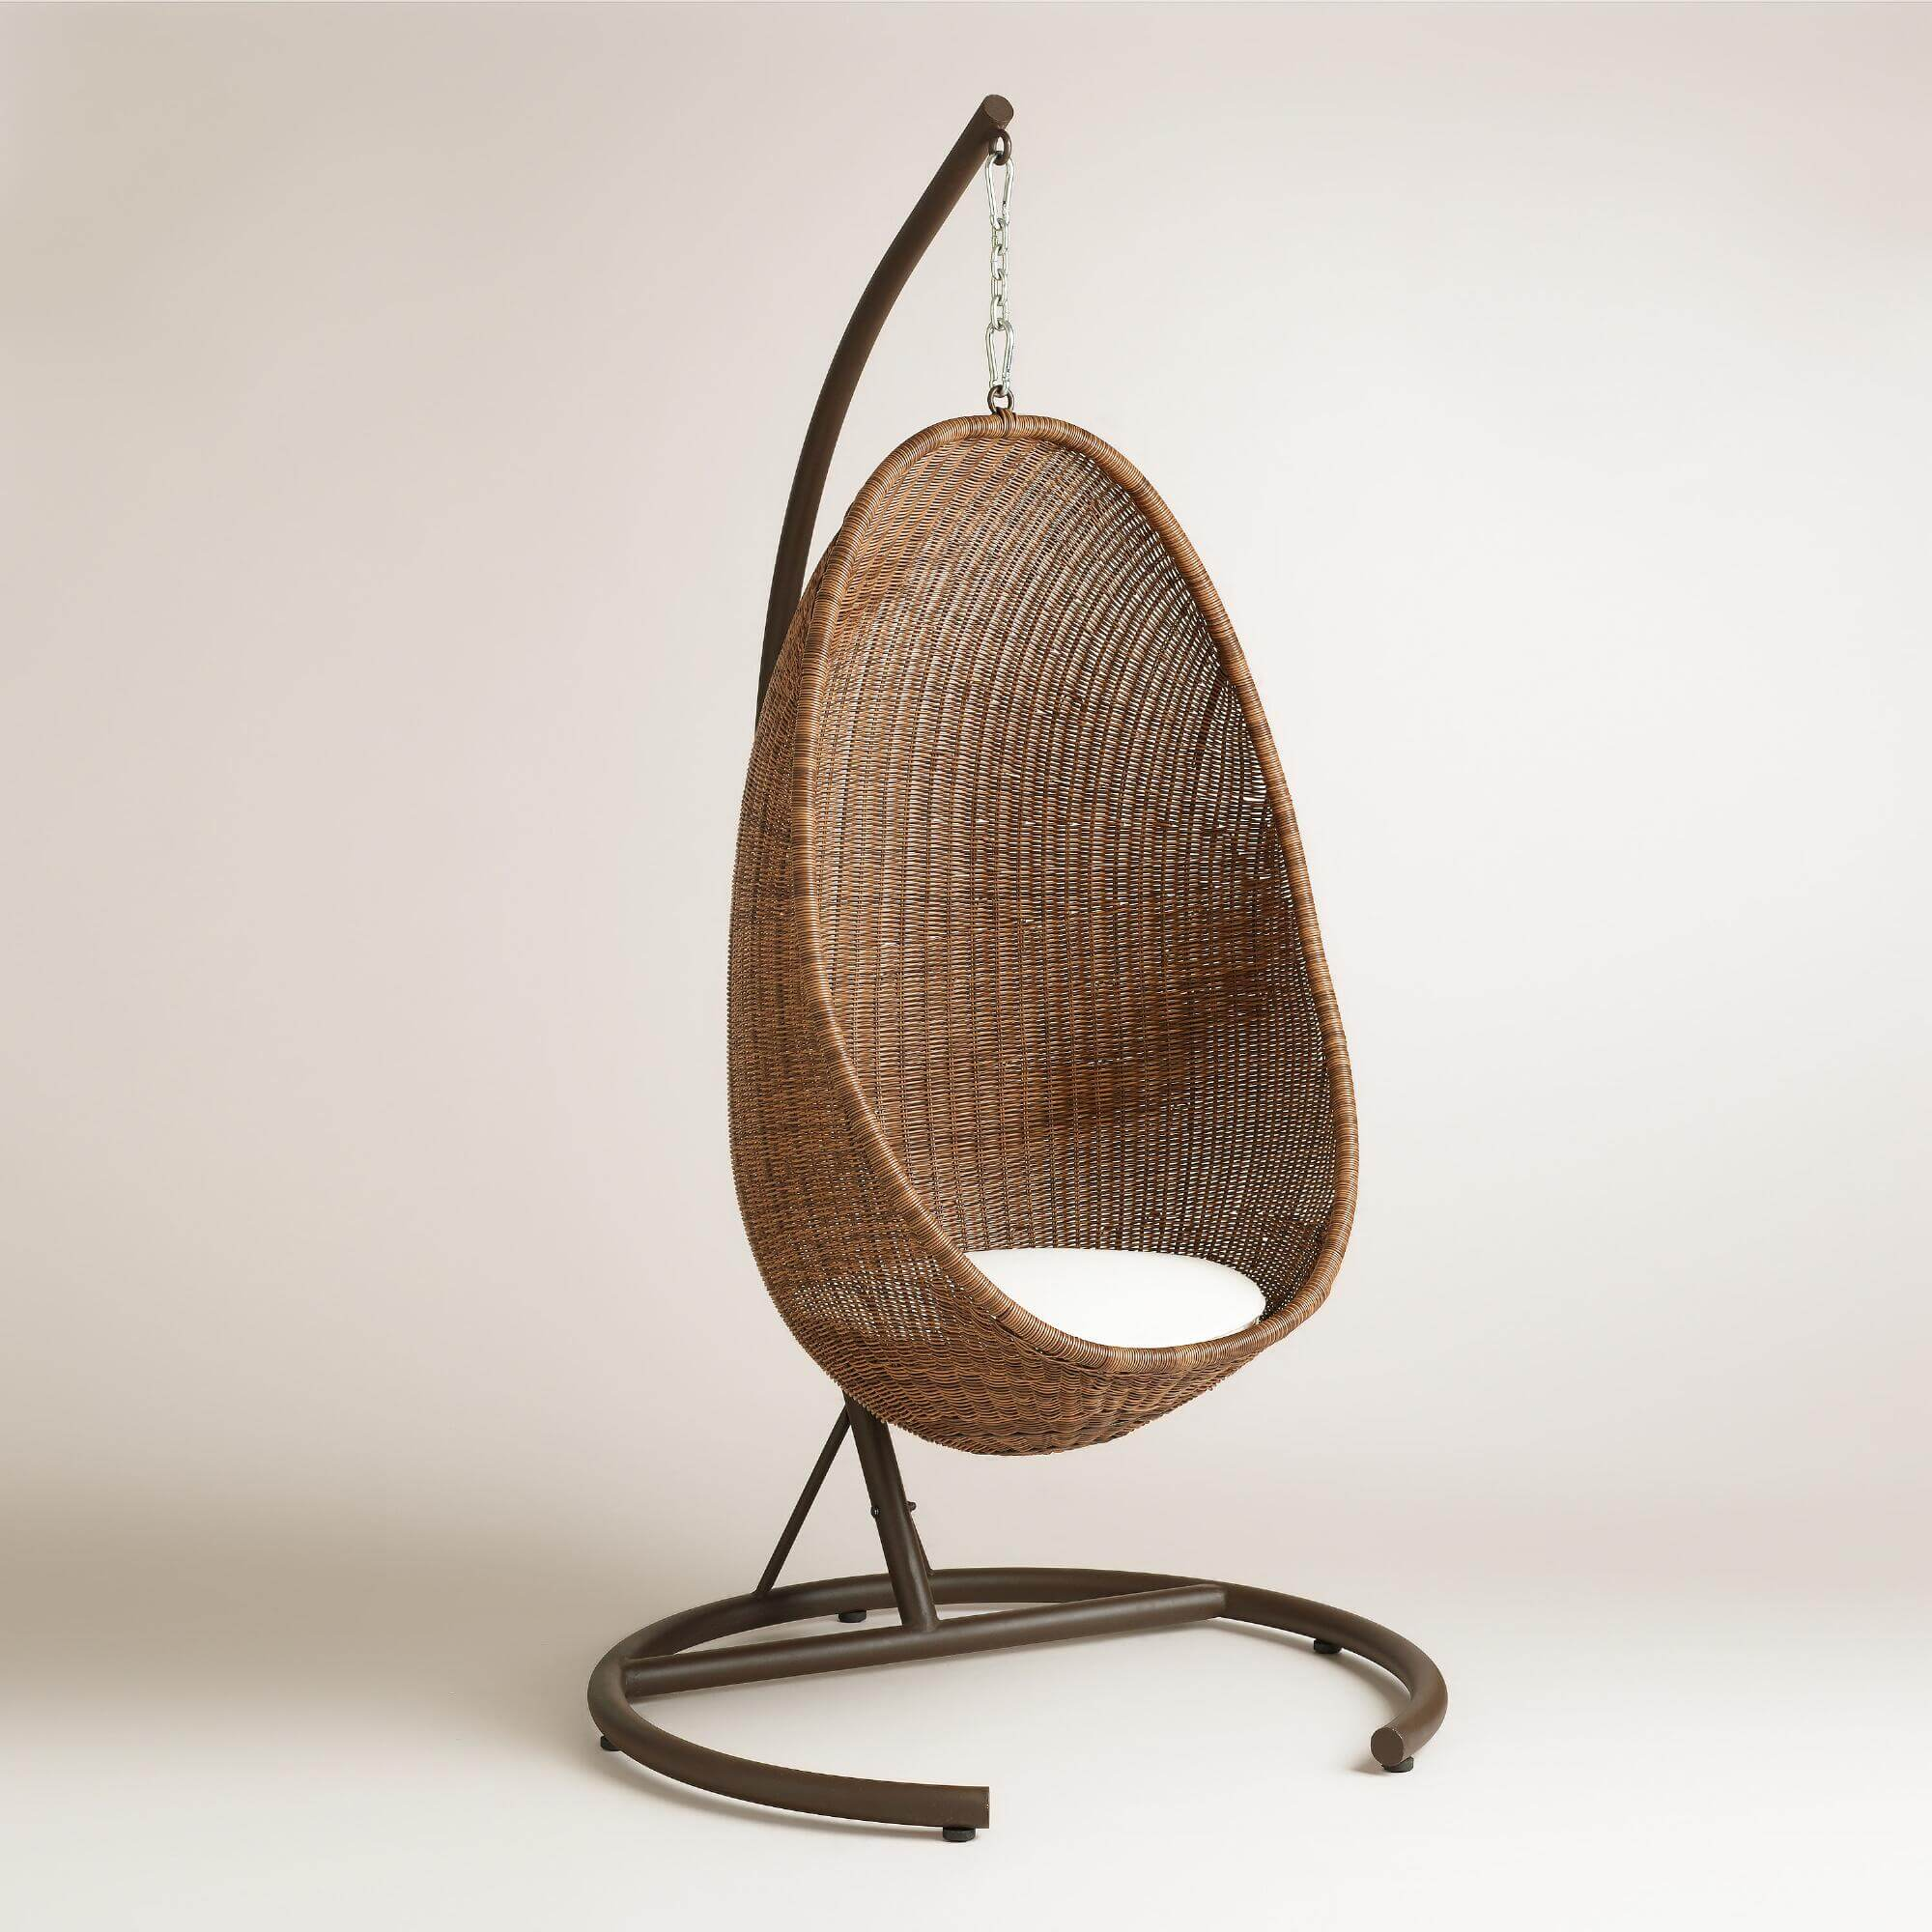 Rattan Egg Chairs Best Hanging Chair Reviews And Guide The Hammock Expert